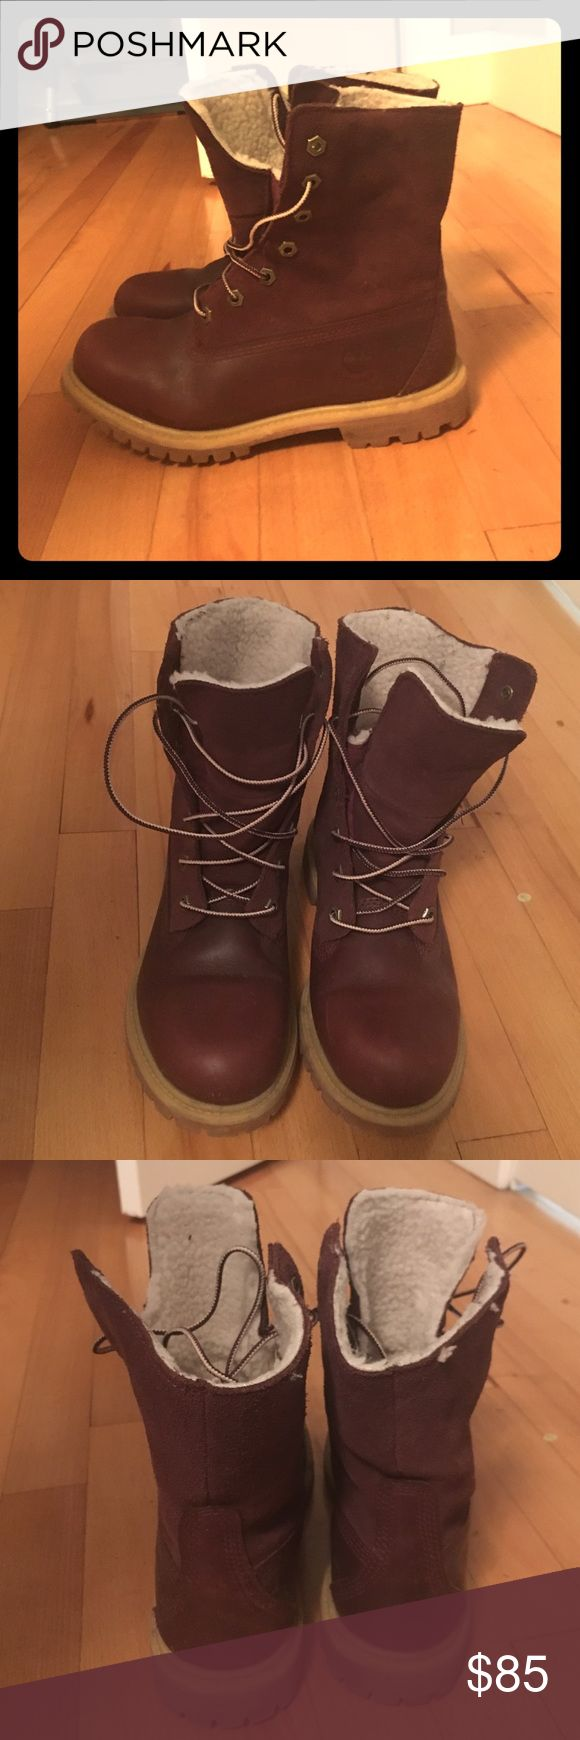 Burgundy timberland boots size 4.5Y Timberland boots size 4.5Y which is a 6-6.5 in women's. Suede and leather material, very cute and lightly worn Timberland Shoes Winter & Rain Boots